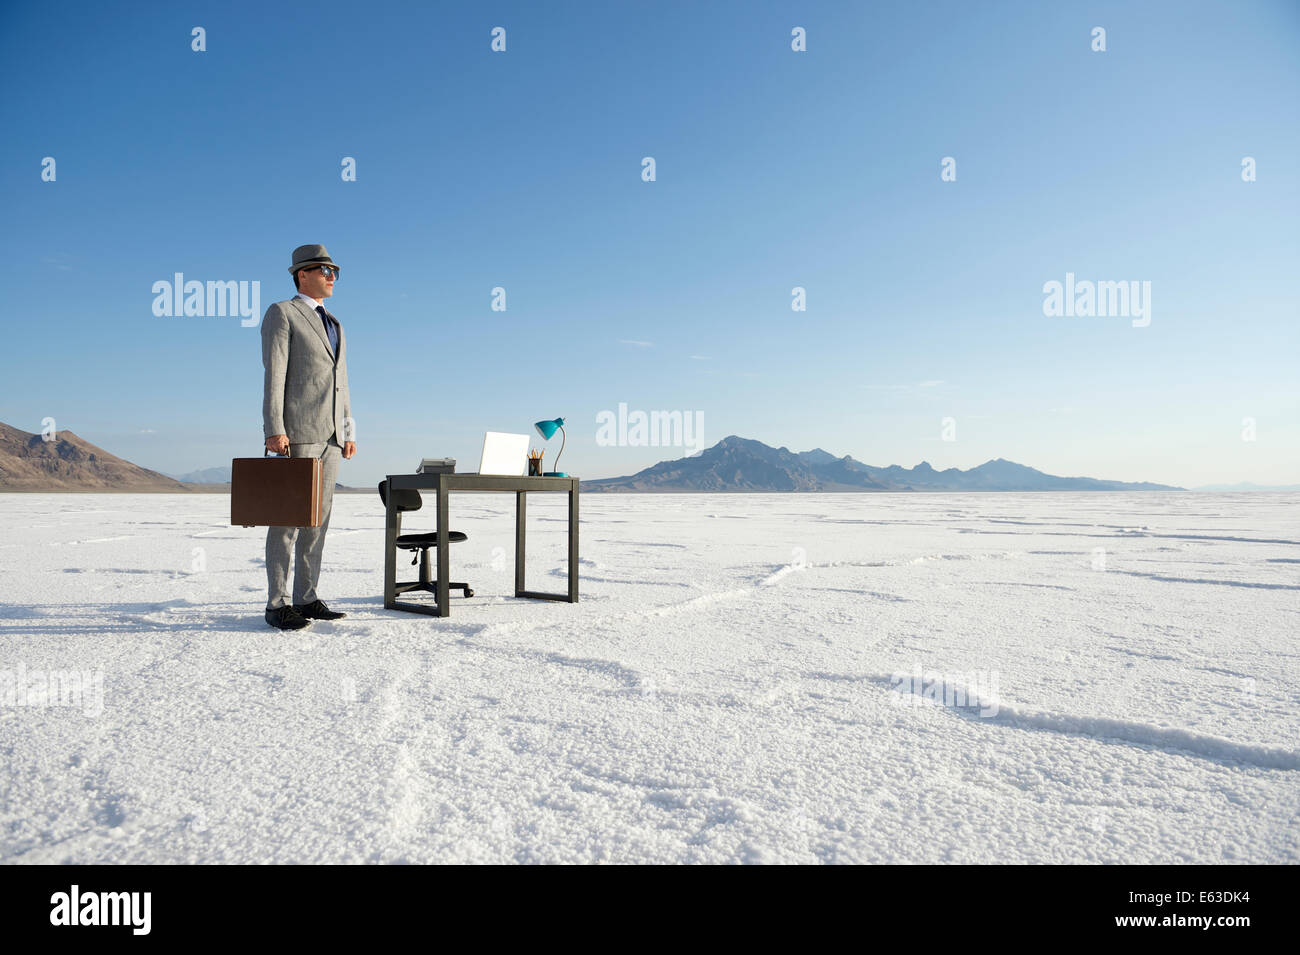 Businessman standing next to mobile office desk outdoors on dramatic white desert landscape - Stock Image